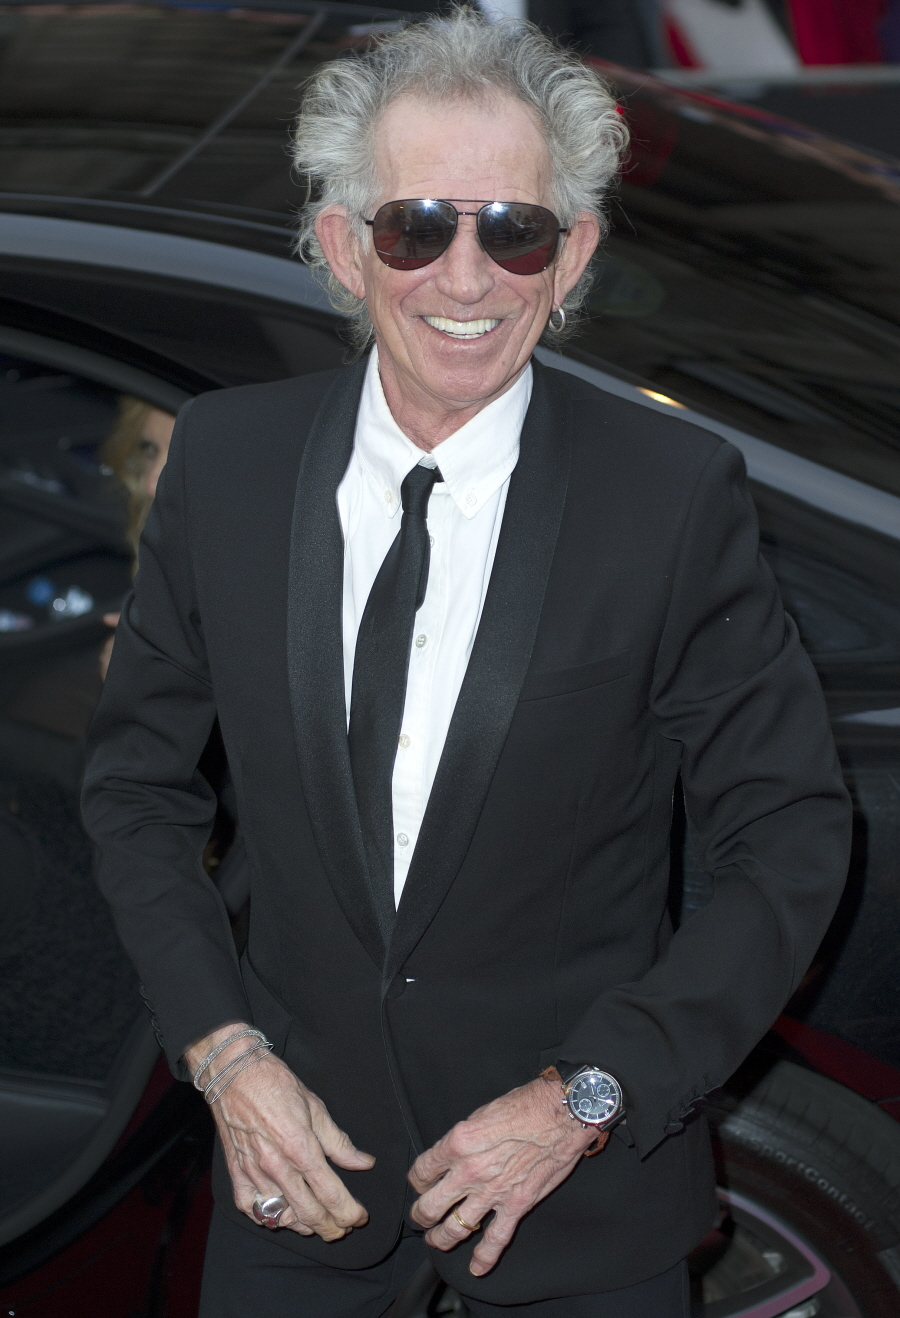 GQ Men Of Year Awards at the Royal Opera House, Covent Garden, London  Featuring: Keith Richards Where: London, United Kingdom When: 08 Sep 2015 Credit: WENN.com